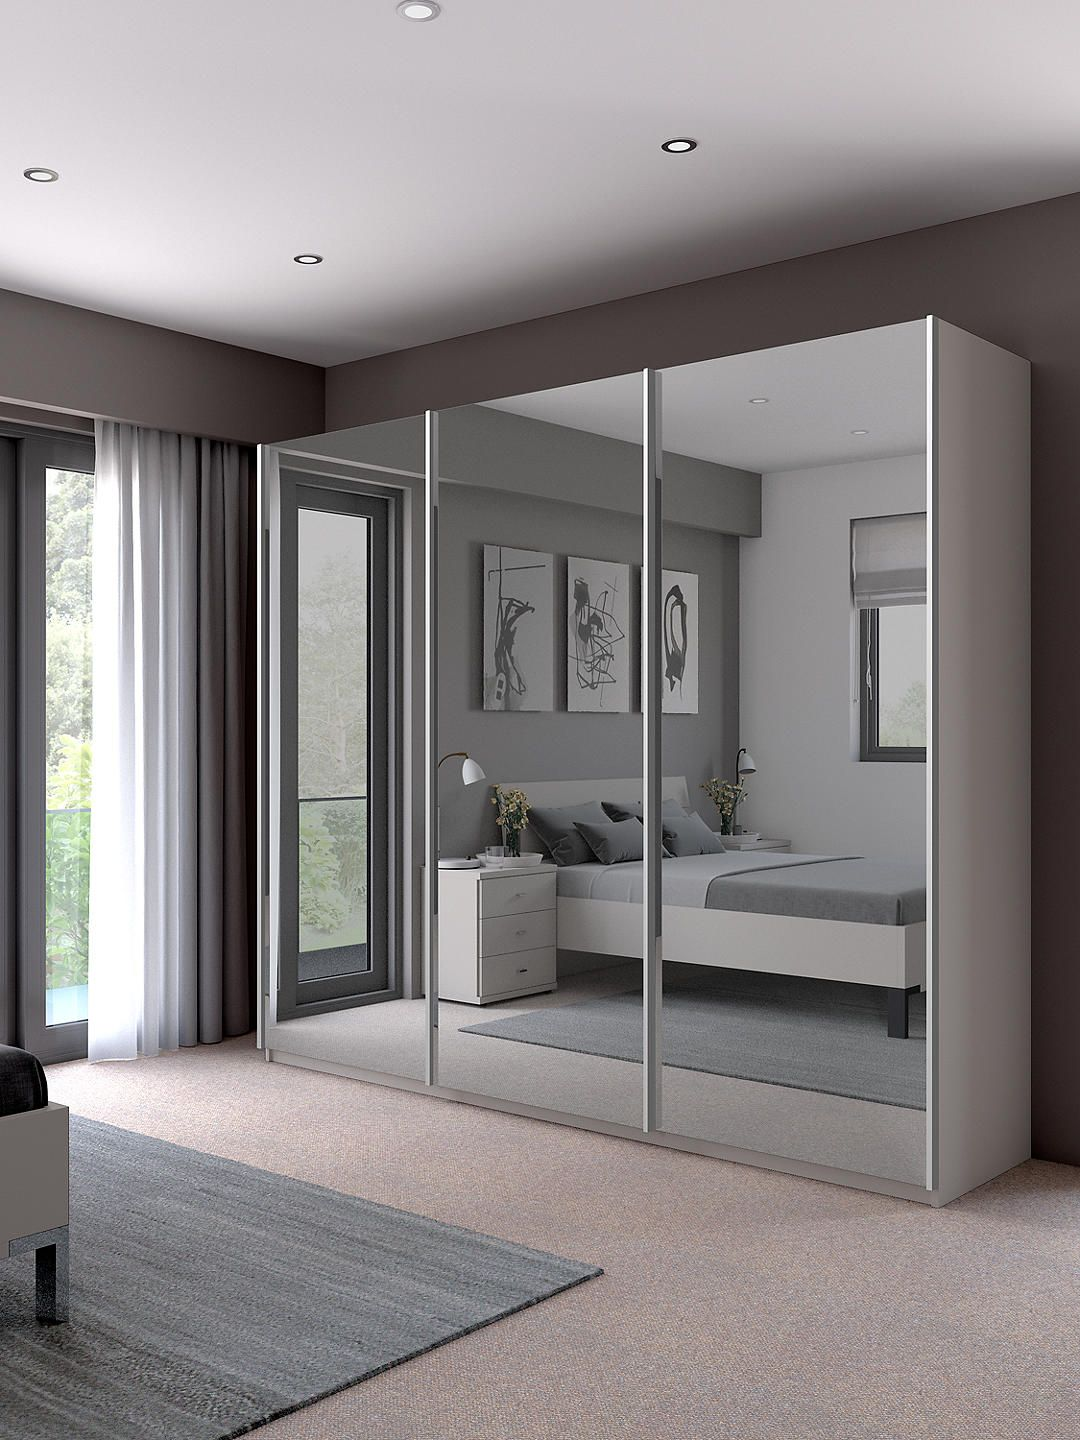 John Lewis & Partners Elstra 250cm Wardrobe with Mirrored ...